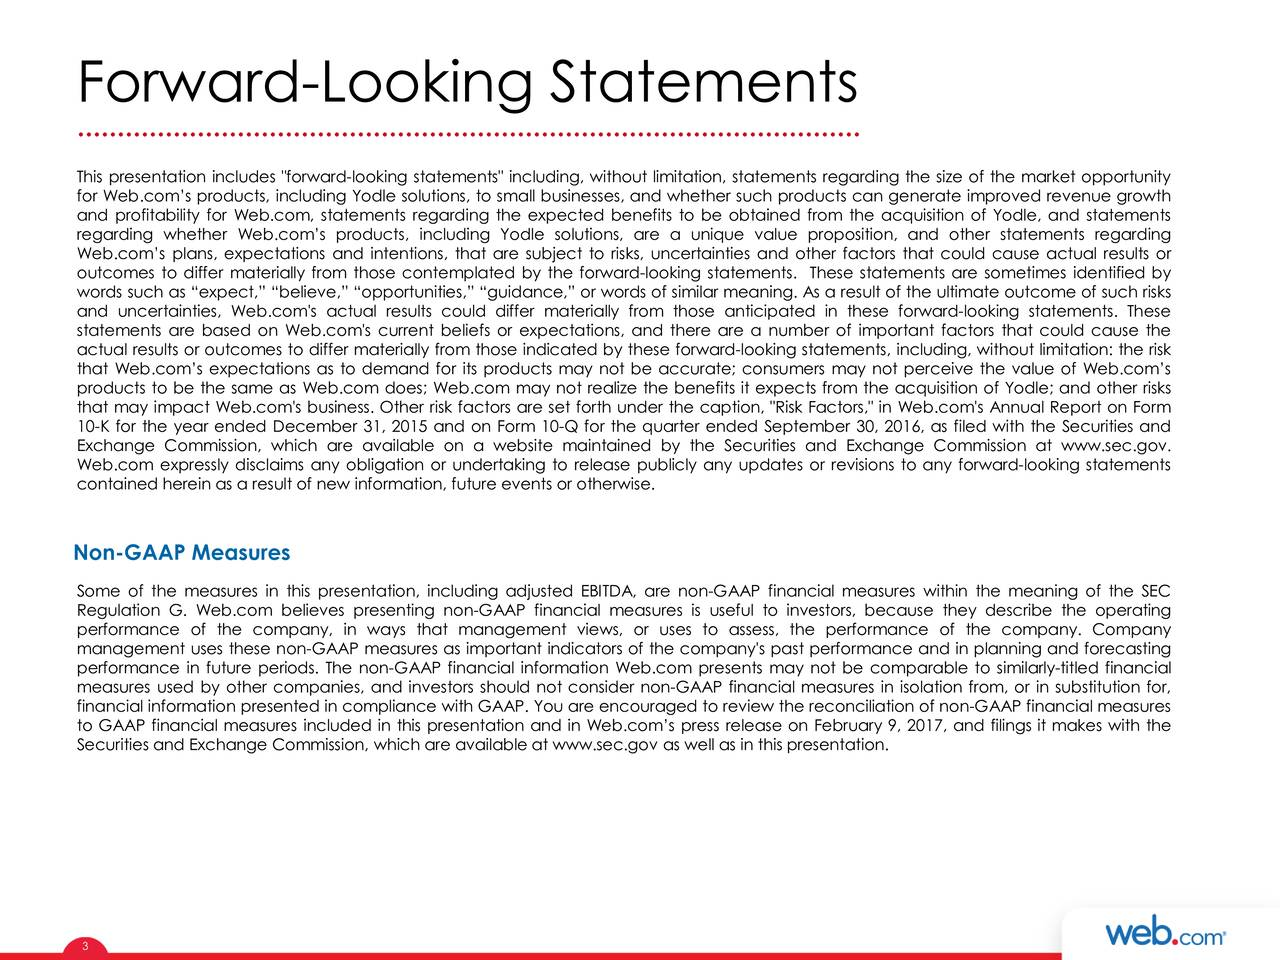 "This presentation includes ""forward-looking statements"" including, without limitation, statements regarding the size of the market opportunity for Web.coms products, including Yodle solutions, to small businesses, and whether such products can generate improved revenue growth and profitability for Web.com, statements regarding the expected benefits to be obtained from the acquisition of Yodle, and statements regarding whether Web.coms products, including Yodle solutions, are a unique value proposition, and other statements regarding Web.coms plans, expectations and intentions, that are subject to risks, uncertainties and other factors that could cause actual results or outcomes to differ materially from those contemplated by the forward-looking statements. These statements are sometimes identified by words such as expect, believe, opportunities, guidance, or words of similar meaning. As a result of the ultimate outcome of such risks and uncertainties, Web.com's actual results could differ materially from those anticipated in these forward-looking statements. These statements are based on Web.com's current beliefs or expectations, and there are a number of important factors that could cause the actual results or outcomes to differ materially from those indicated by these forward-looking statements, including, without limitation: the risk that Web.coms expectations as to demand for its products may not be accurate; consumers may not perceive the value of Web.coms products to be the same as Web.com does; Web.com may not realize the benefits it expects from the acquisition of Yodle; and other risks that may impact Web.com's business. Other risk factors are set forth under the caption, ""Risk Factors,"" in Web.com's Annual Report on Form 10-K for the year ended December 31, 2015 and on Form 10-Q for the quarter ended September 30, 2016, as filed with the Securities and Exchange Commission, which are available on a website maintained by the Securities and Exchange Commission at www.sec.gov. Web.com expressly disclaims any obligation or undertaking to release publicly any updates or revisions to any forward-looking statements contained herein as a result of new information, future events or otherwise. Non-GAAP Measures Some of the measures in this presentation, including adjusted EBITDA, are non-GAAP financial measures within the meaning of the SEC Regulation G. Web.com believes presenting non-GAAP financial measures is useful to investors, because they describe the operating performance of the company, in ways that management views, or uses to assess, the performance of the company. Company management uses these non-GAAP measures as important indicators of the company's past performance and in planning and forecasting performance in future periods. The non-GAAP financial information Web.com presents may not be comparable to similarly-titled financial measures used by other companies, and investors should not consider non-GAAP financial measures in isolation from, or in substitution for, financial information presented in compliance with GAAP. You are encouraged to review the reconciliation of non-GAAP financial measures to GAAP financial measures included in this presentation and in Web.coms press release on February 9, 2017, and filings it makes with the Securities and Exchange Commission, which are available at www.sec.gov as well as in this presentation. 3"